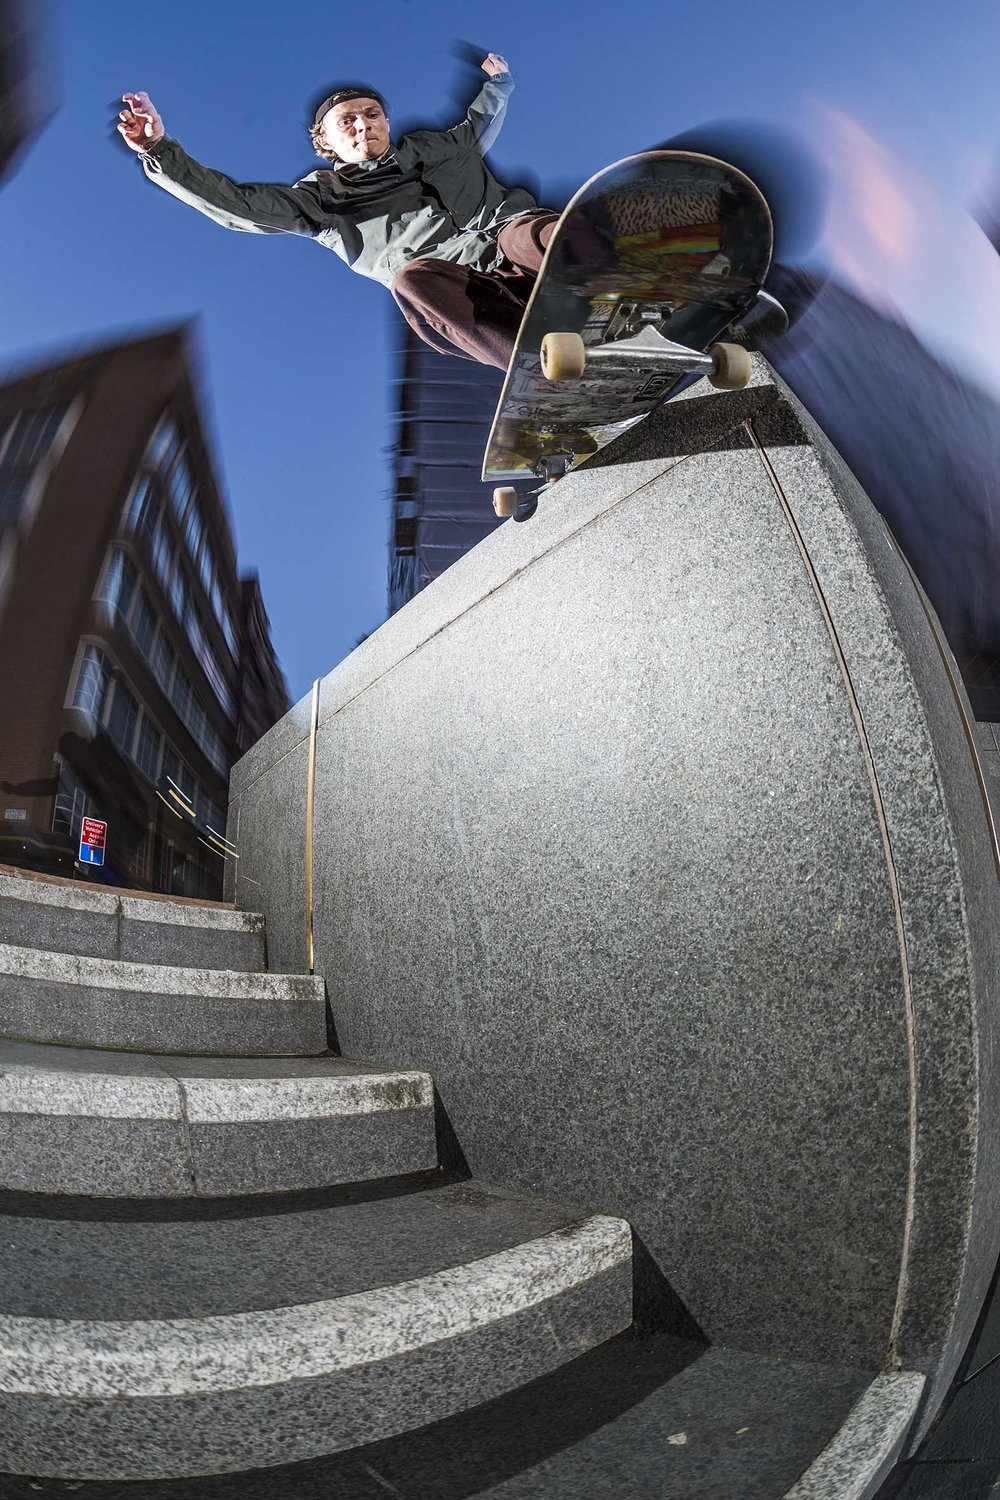 Seb Batty - backside smith